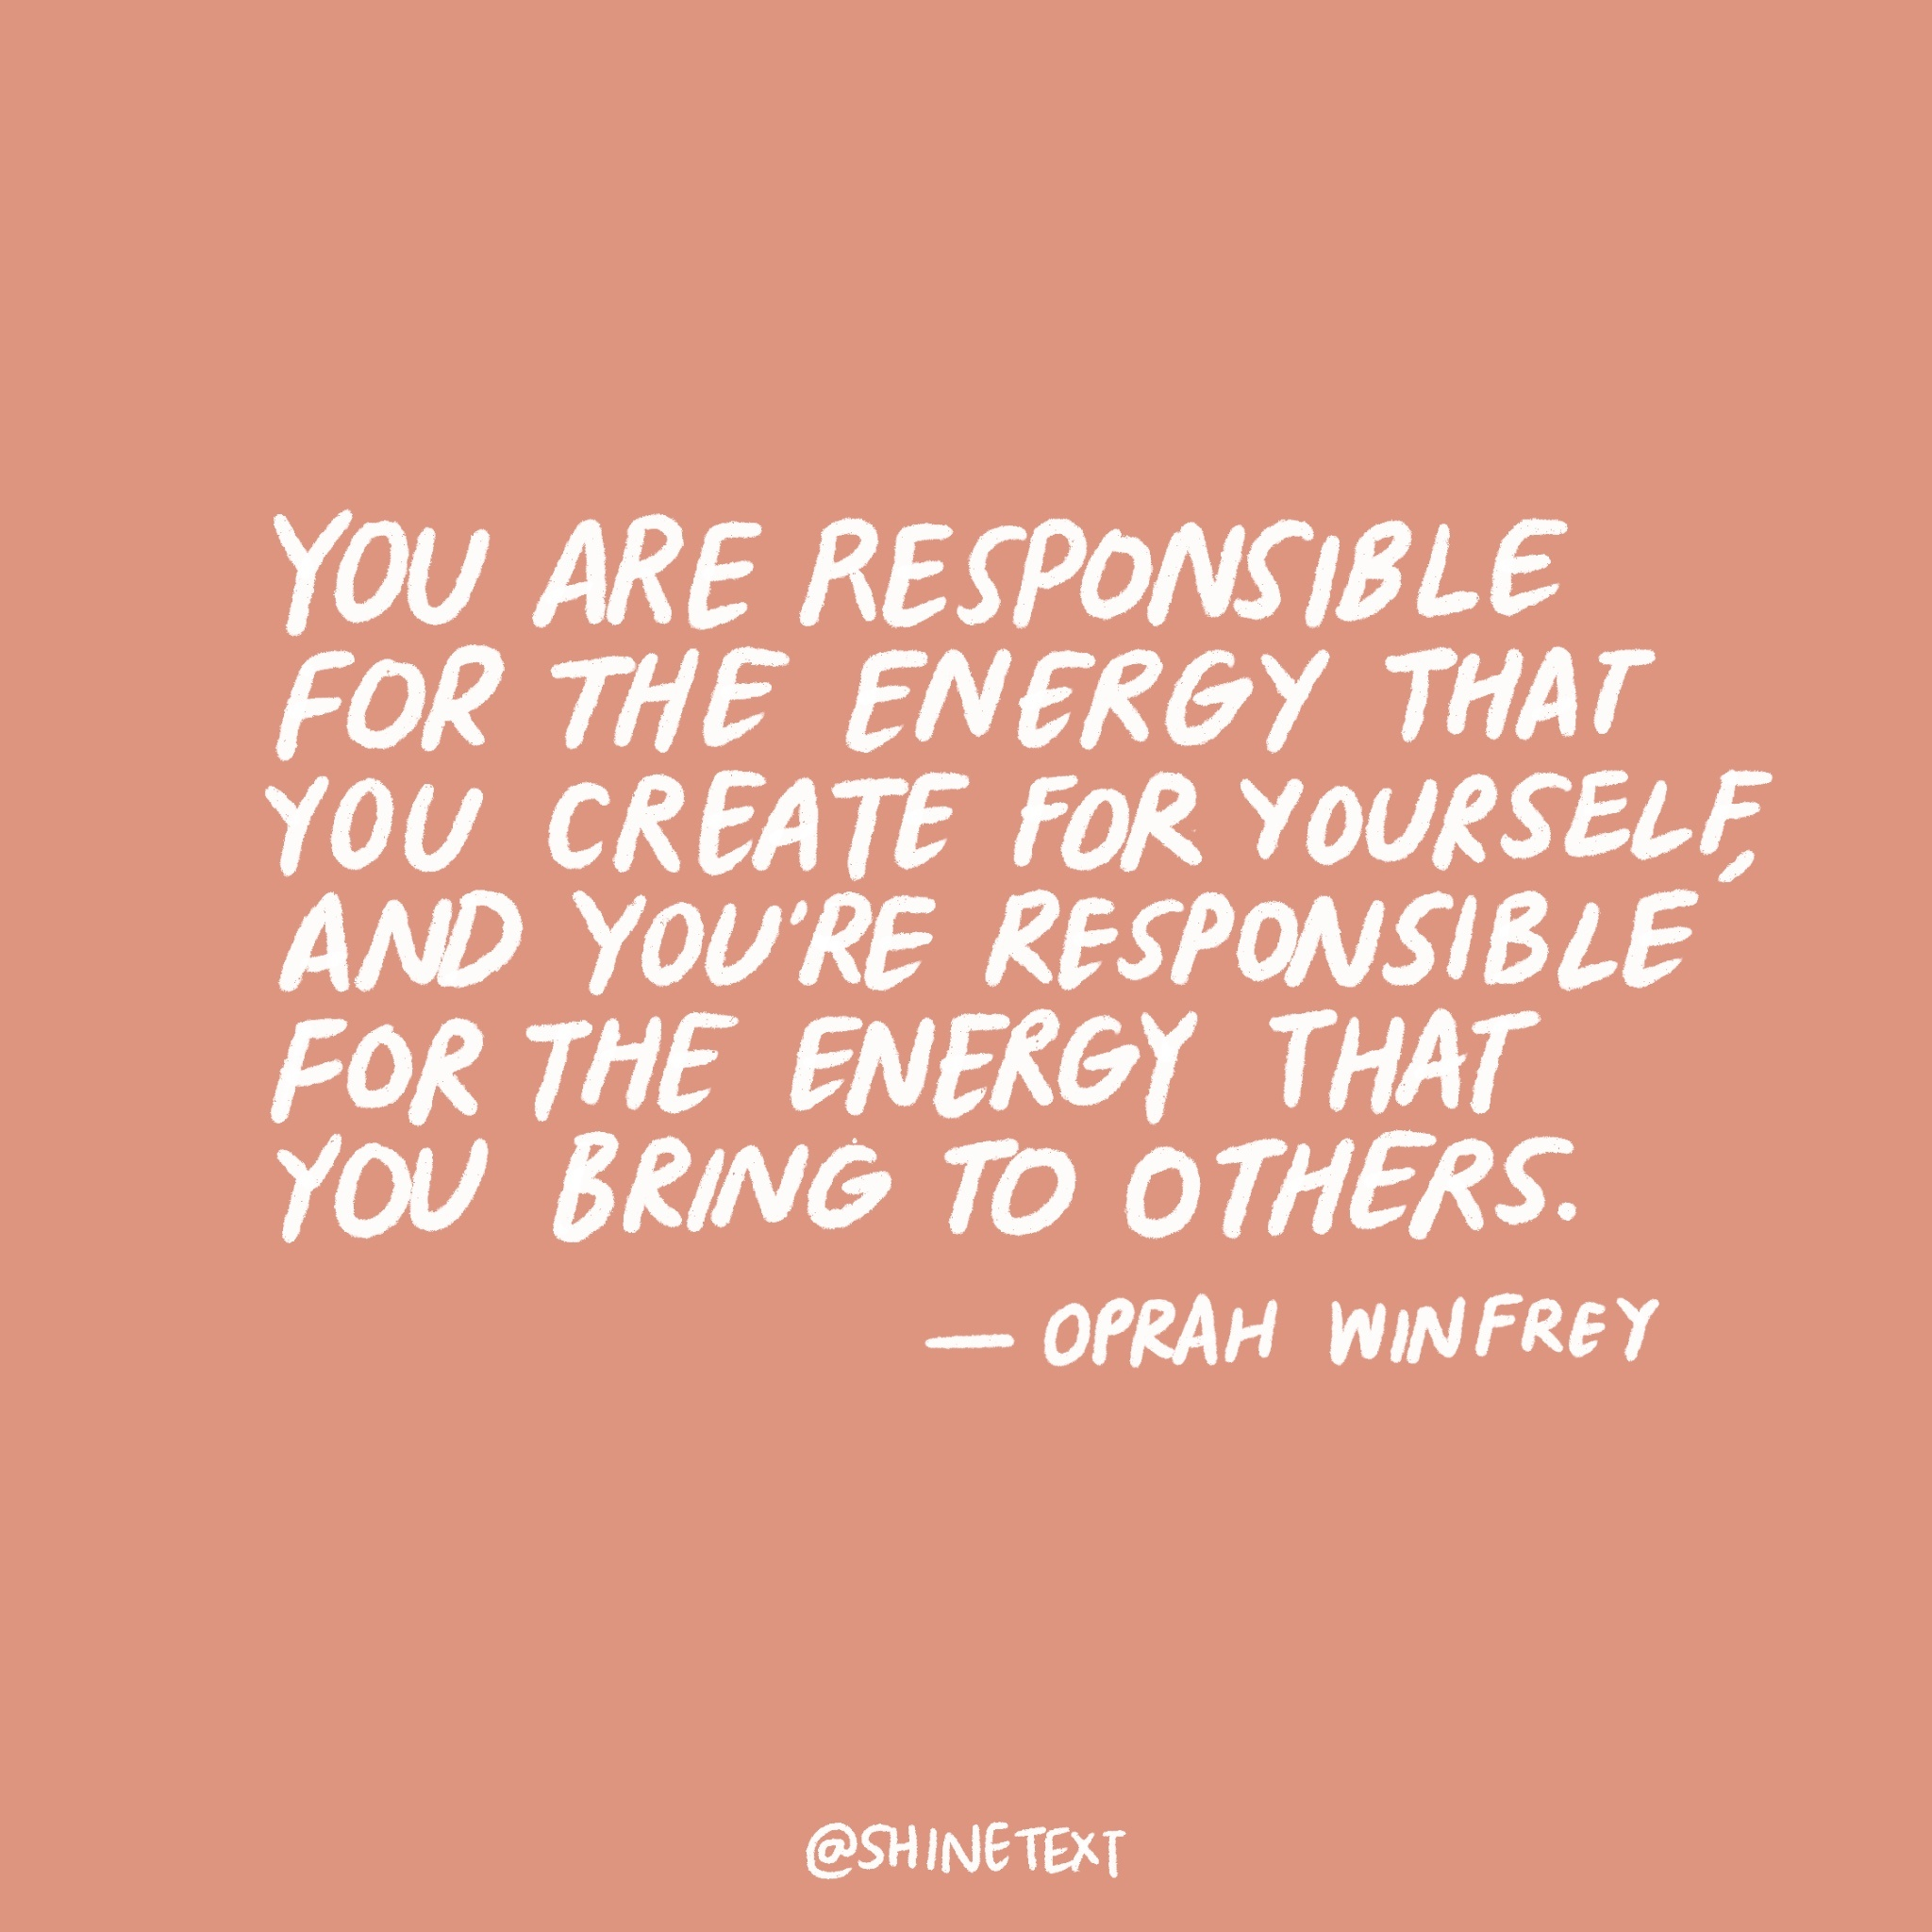 You are responsible for the energy that you create for yourself